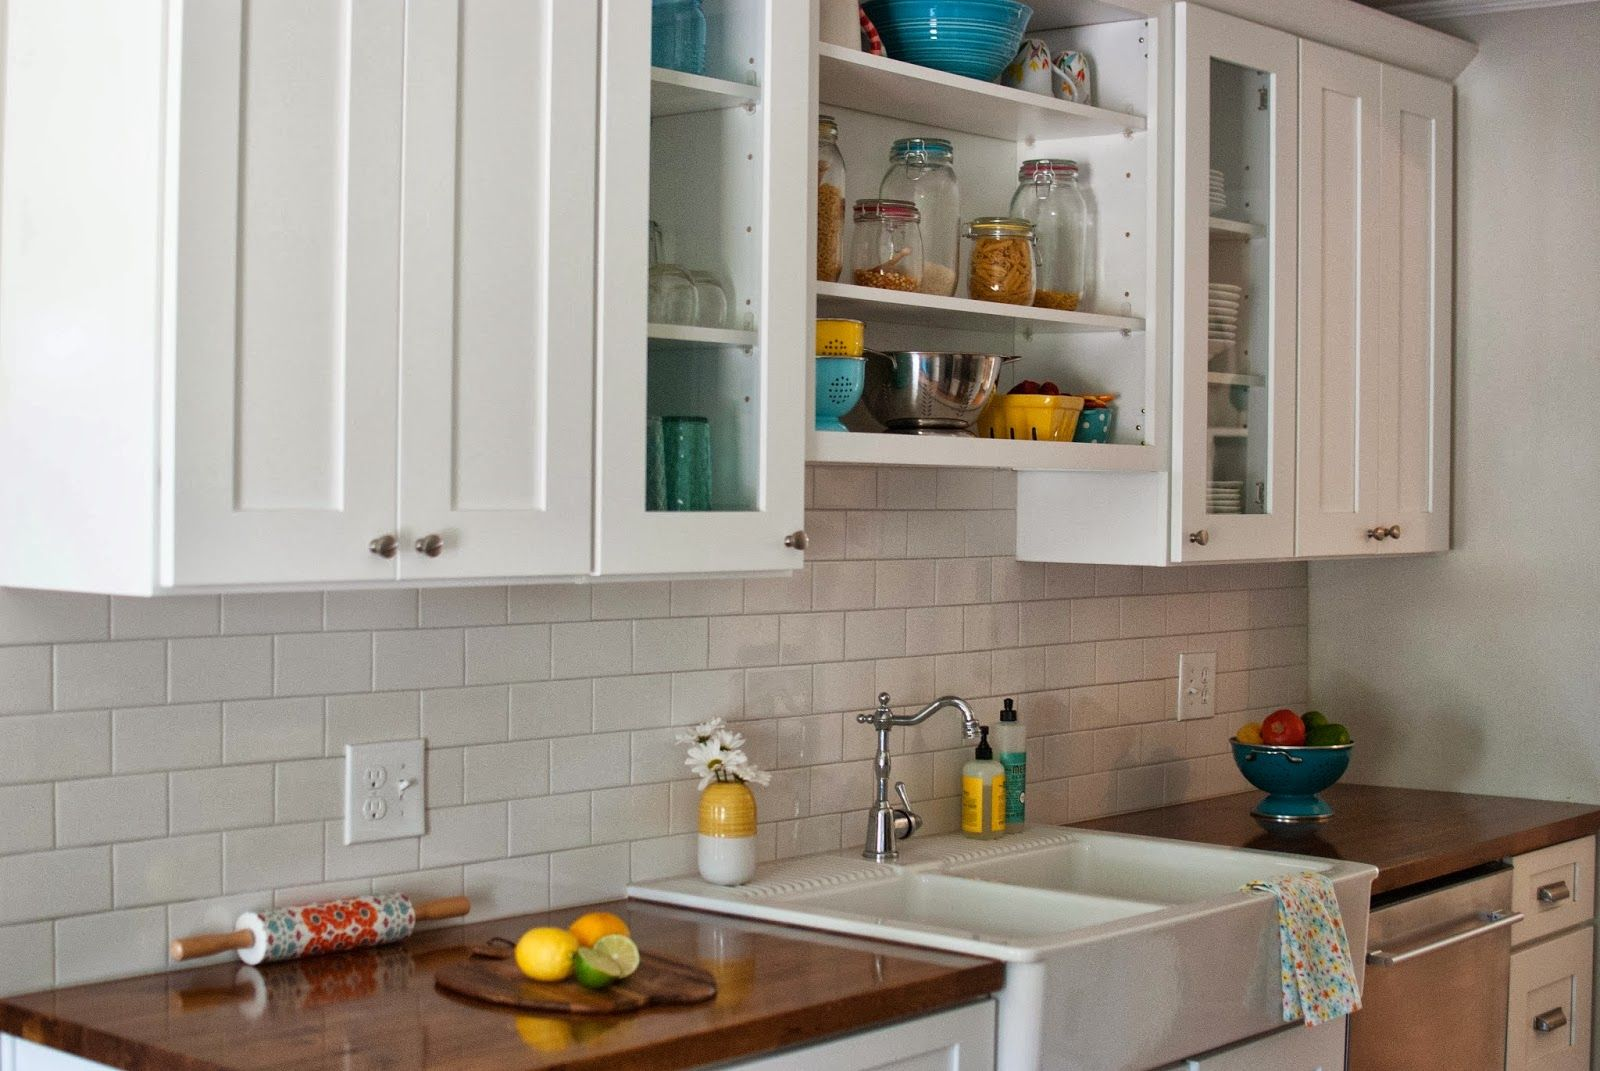 white subway tile backsplash butcher block counters google white subway tile backsplash butcher block counters google search